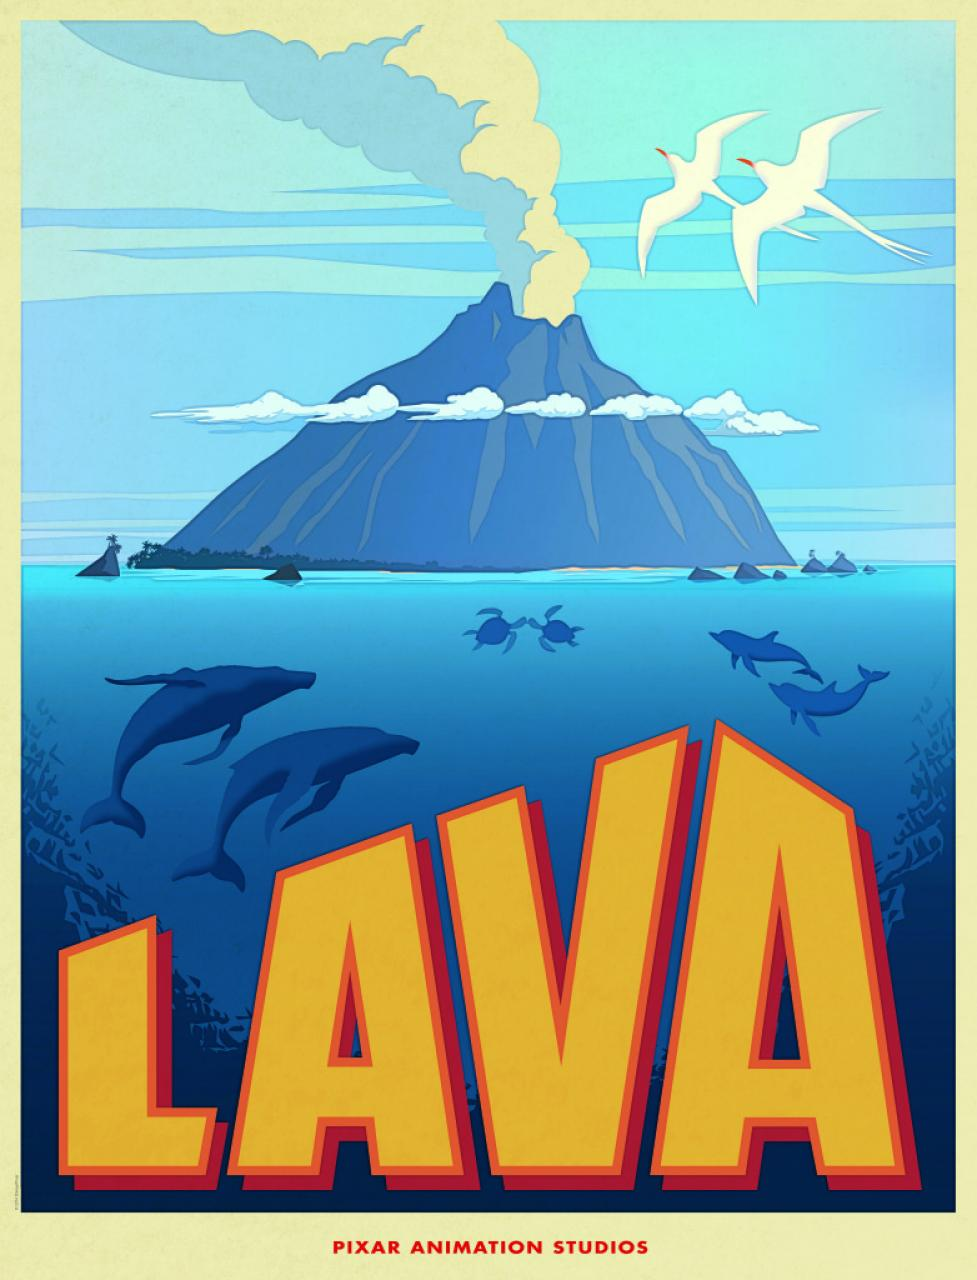 Pixar Reveals 'Lava,' A New Short Spanning Millions Of Years